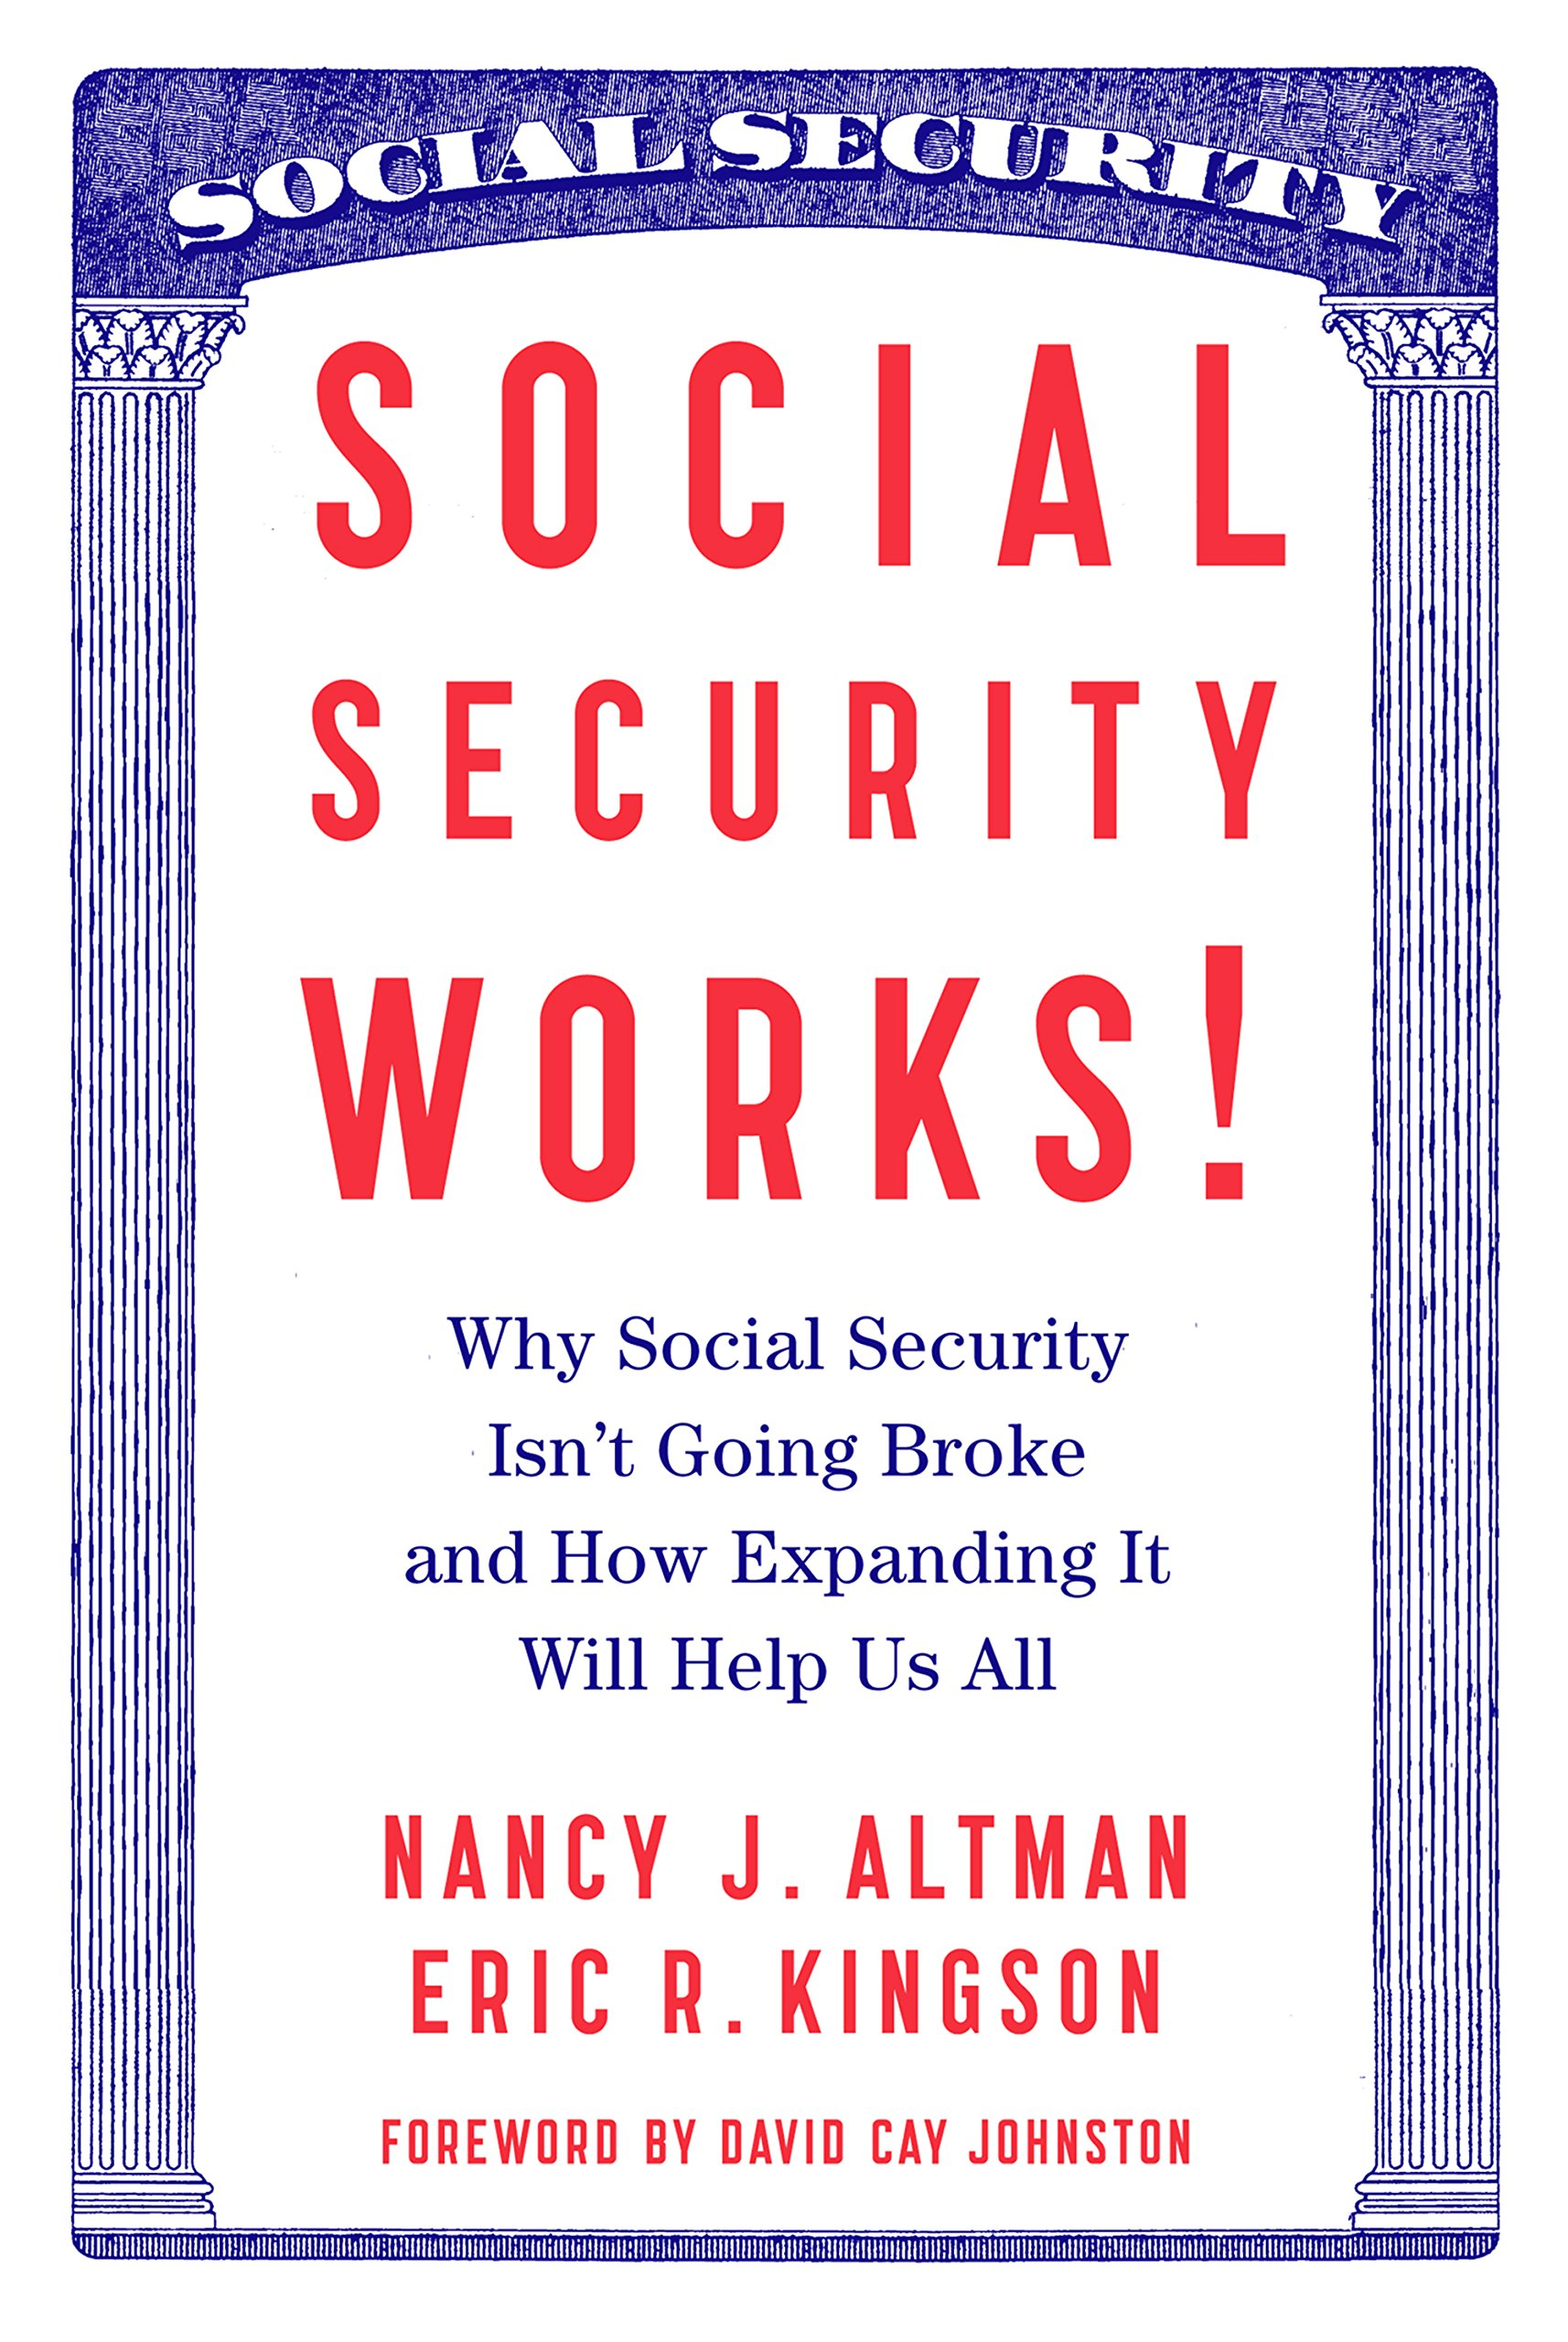 Social Security Works!: Why Social Security Isnat Going Broke and How Expanding It Will Help Us All (Inglés) Tapa blanda – 21 ene 2015